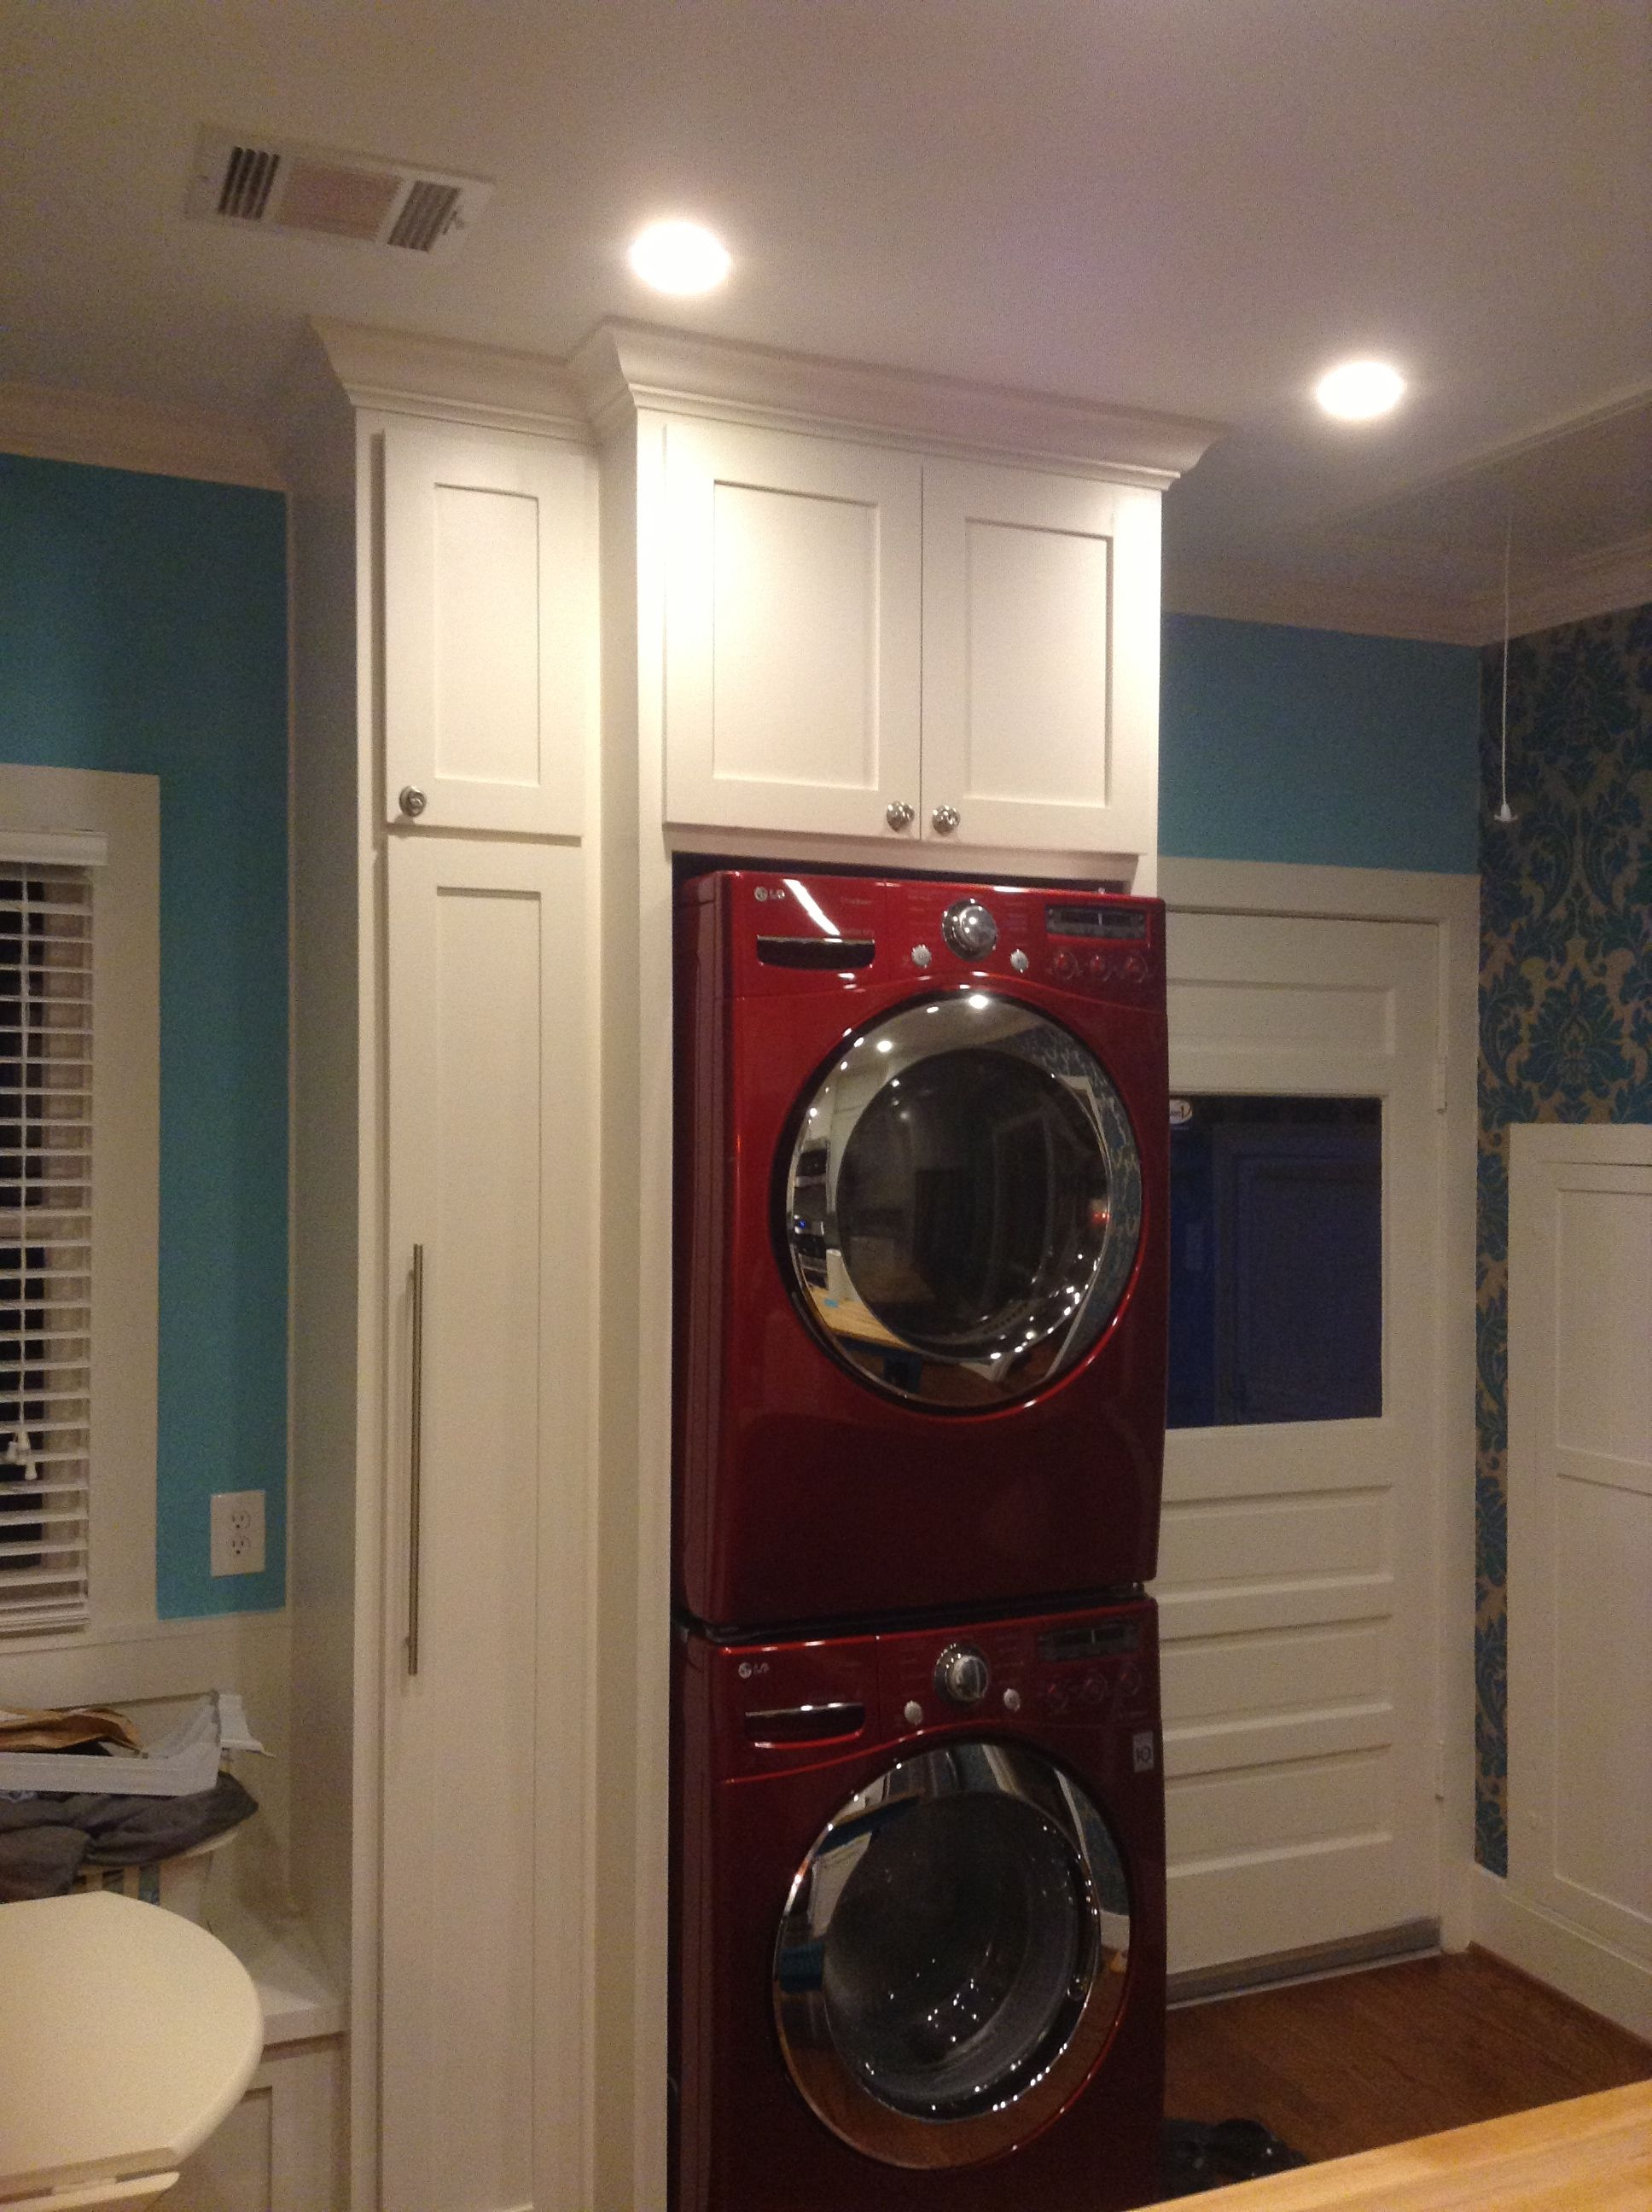 Charmant Red LG Stacked Washer/dryer; Laundry Area In Kitchen, Crown Molding